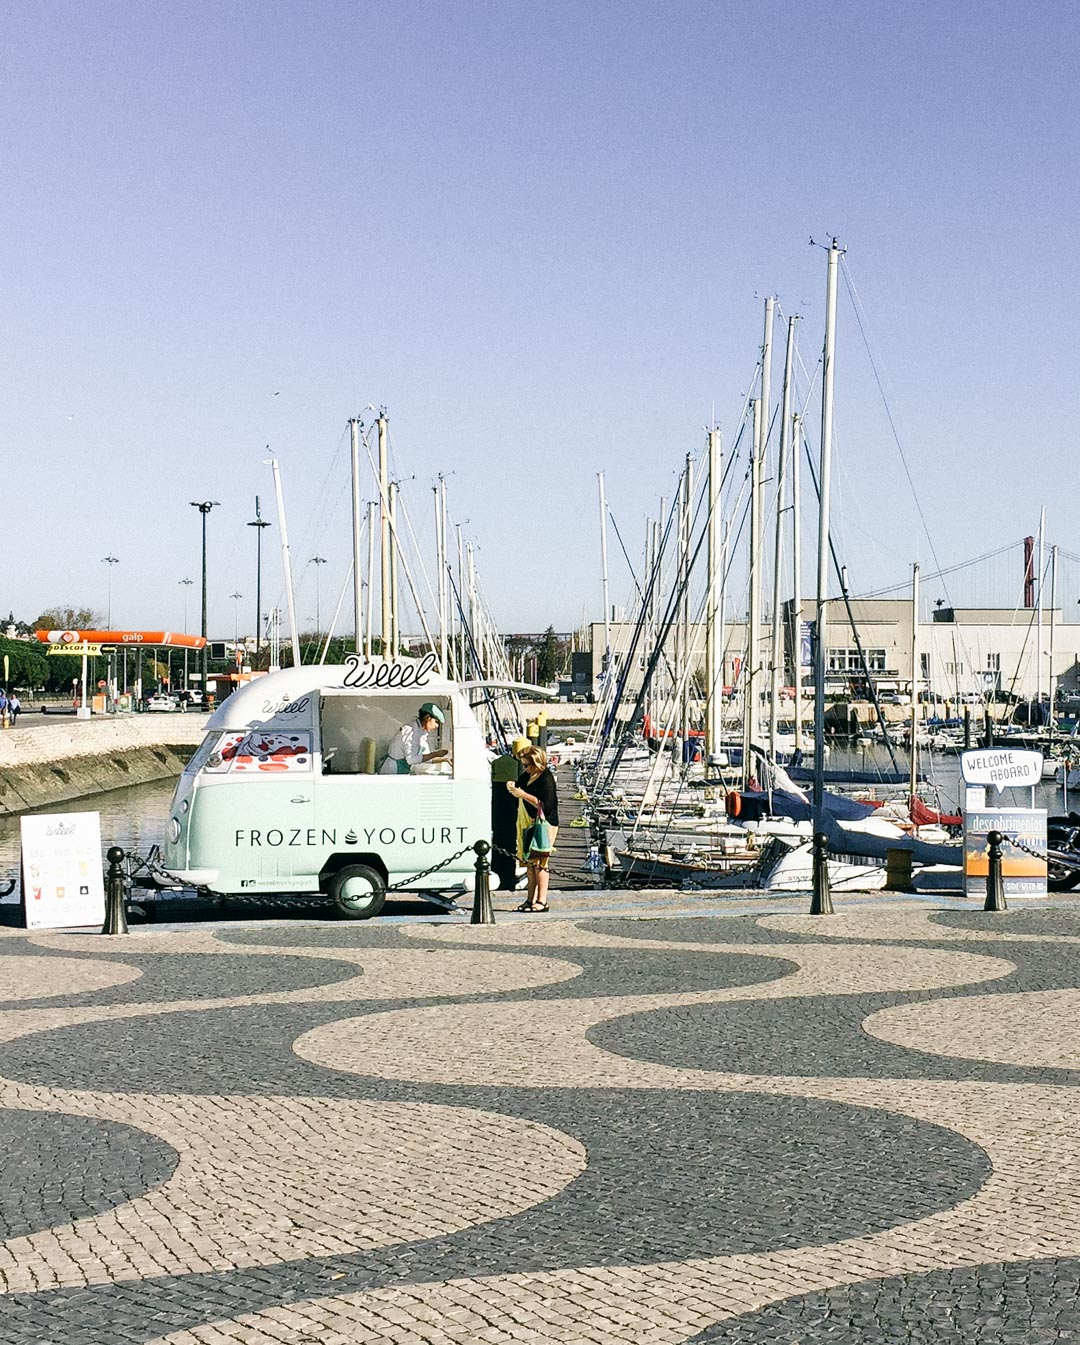 I could wander along the port for the whole sunny afternoon.